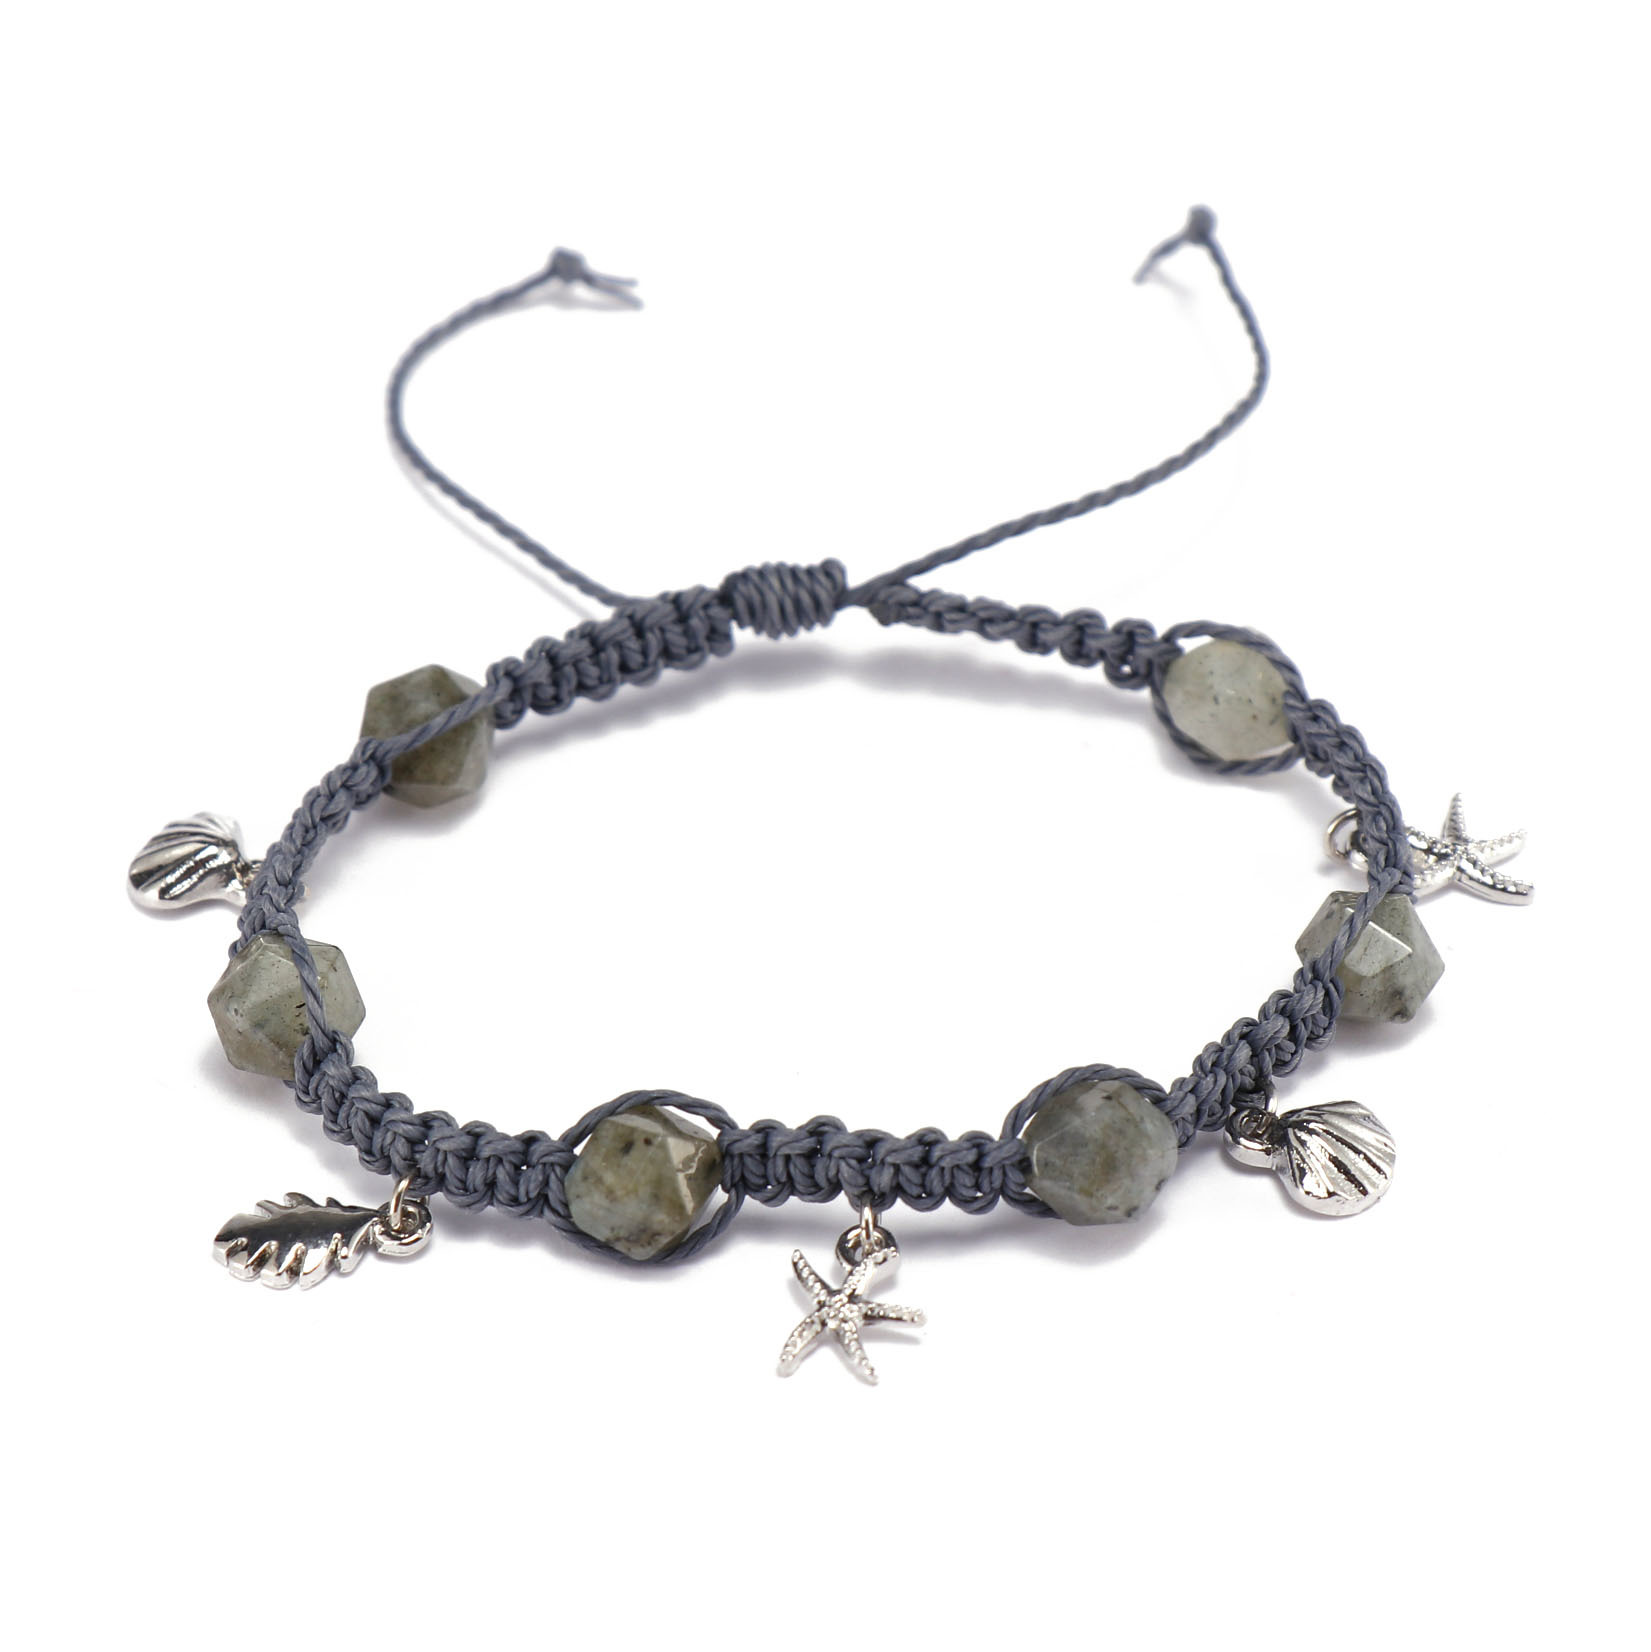 Handmade Wax Cord Natural Faceted Stone Bracelet With Aolly Charms